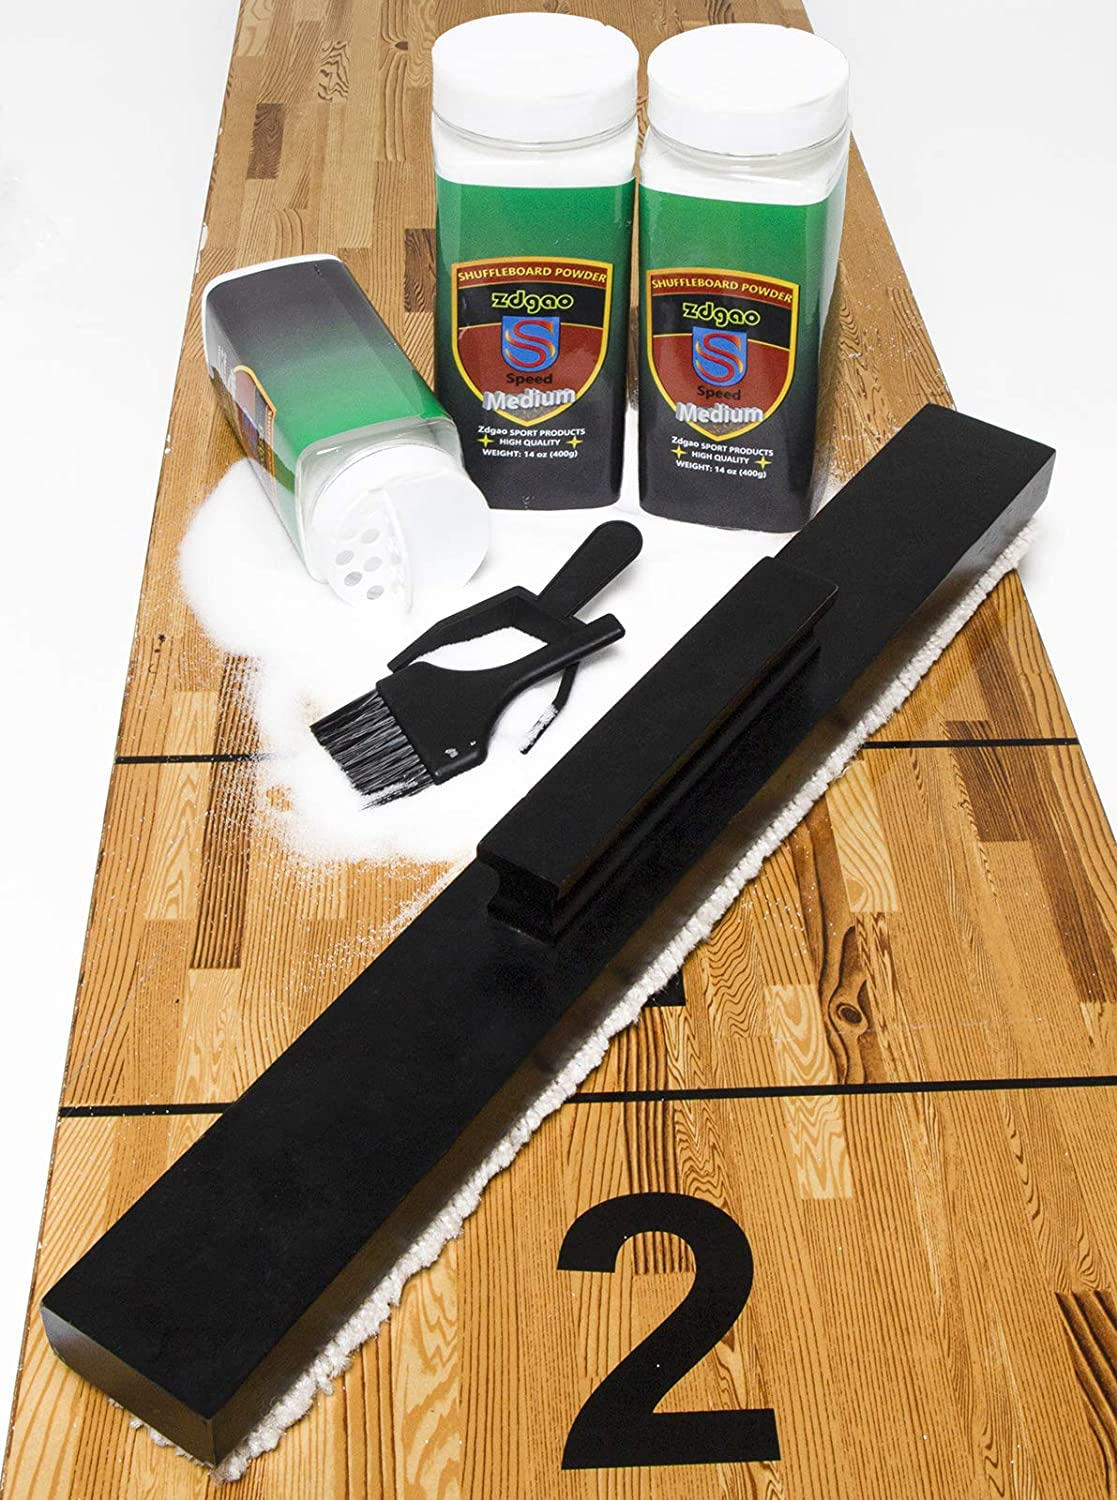 Shuffleboard Sand with Brush Max 69% OFF New arrival Set Wax -